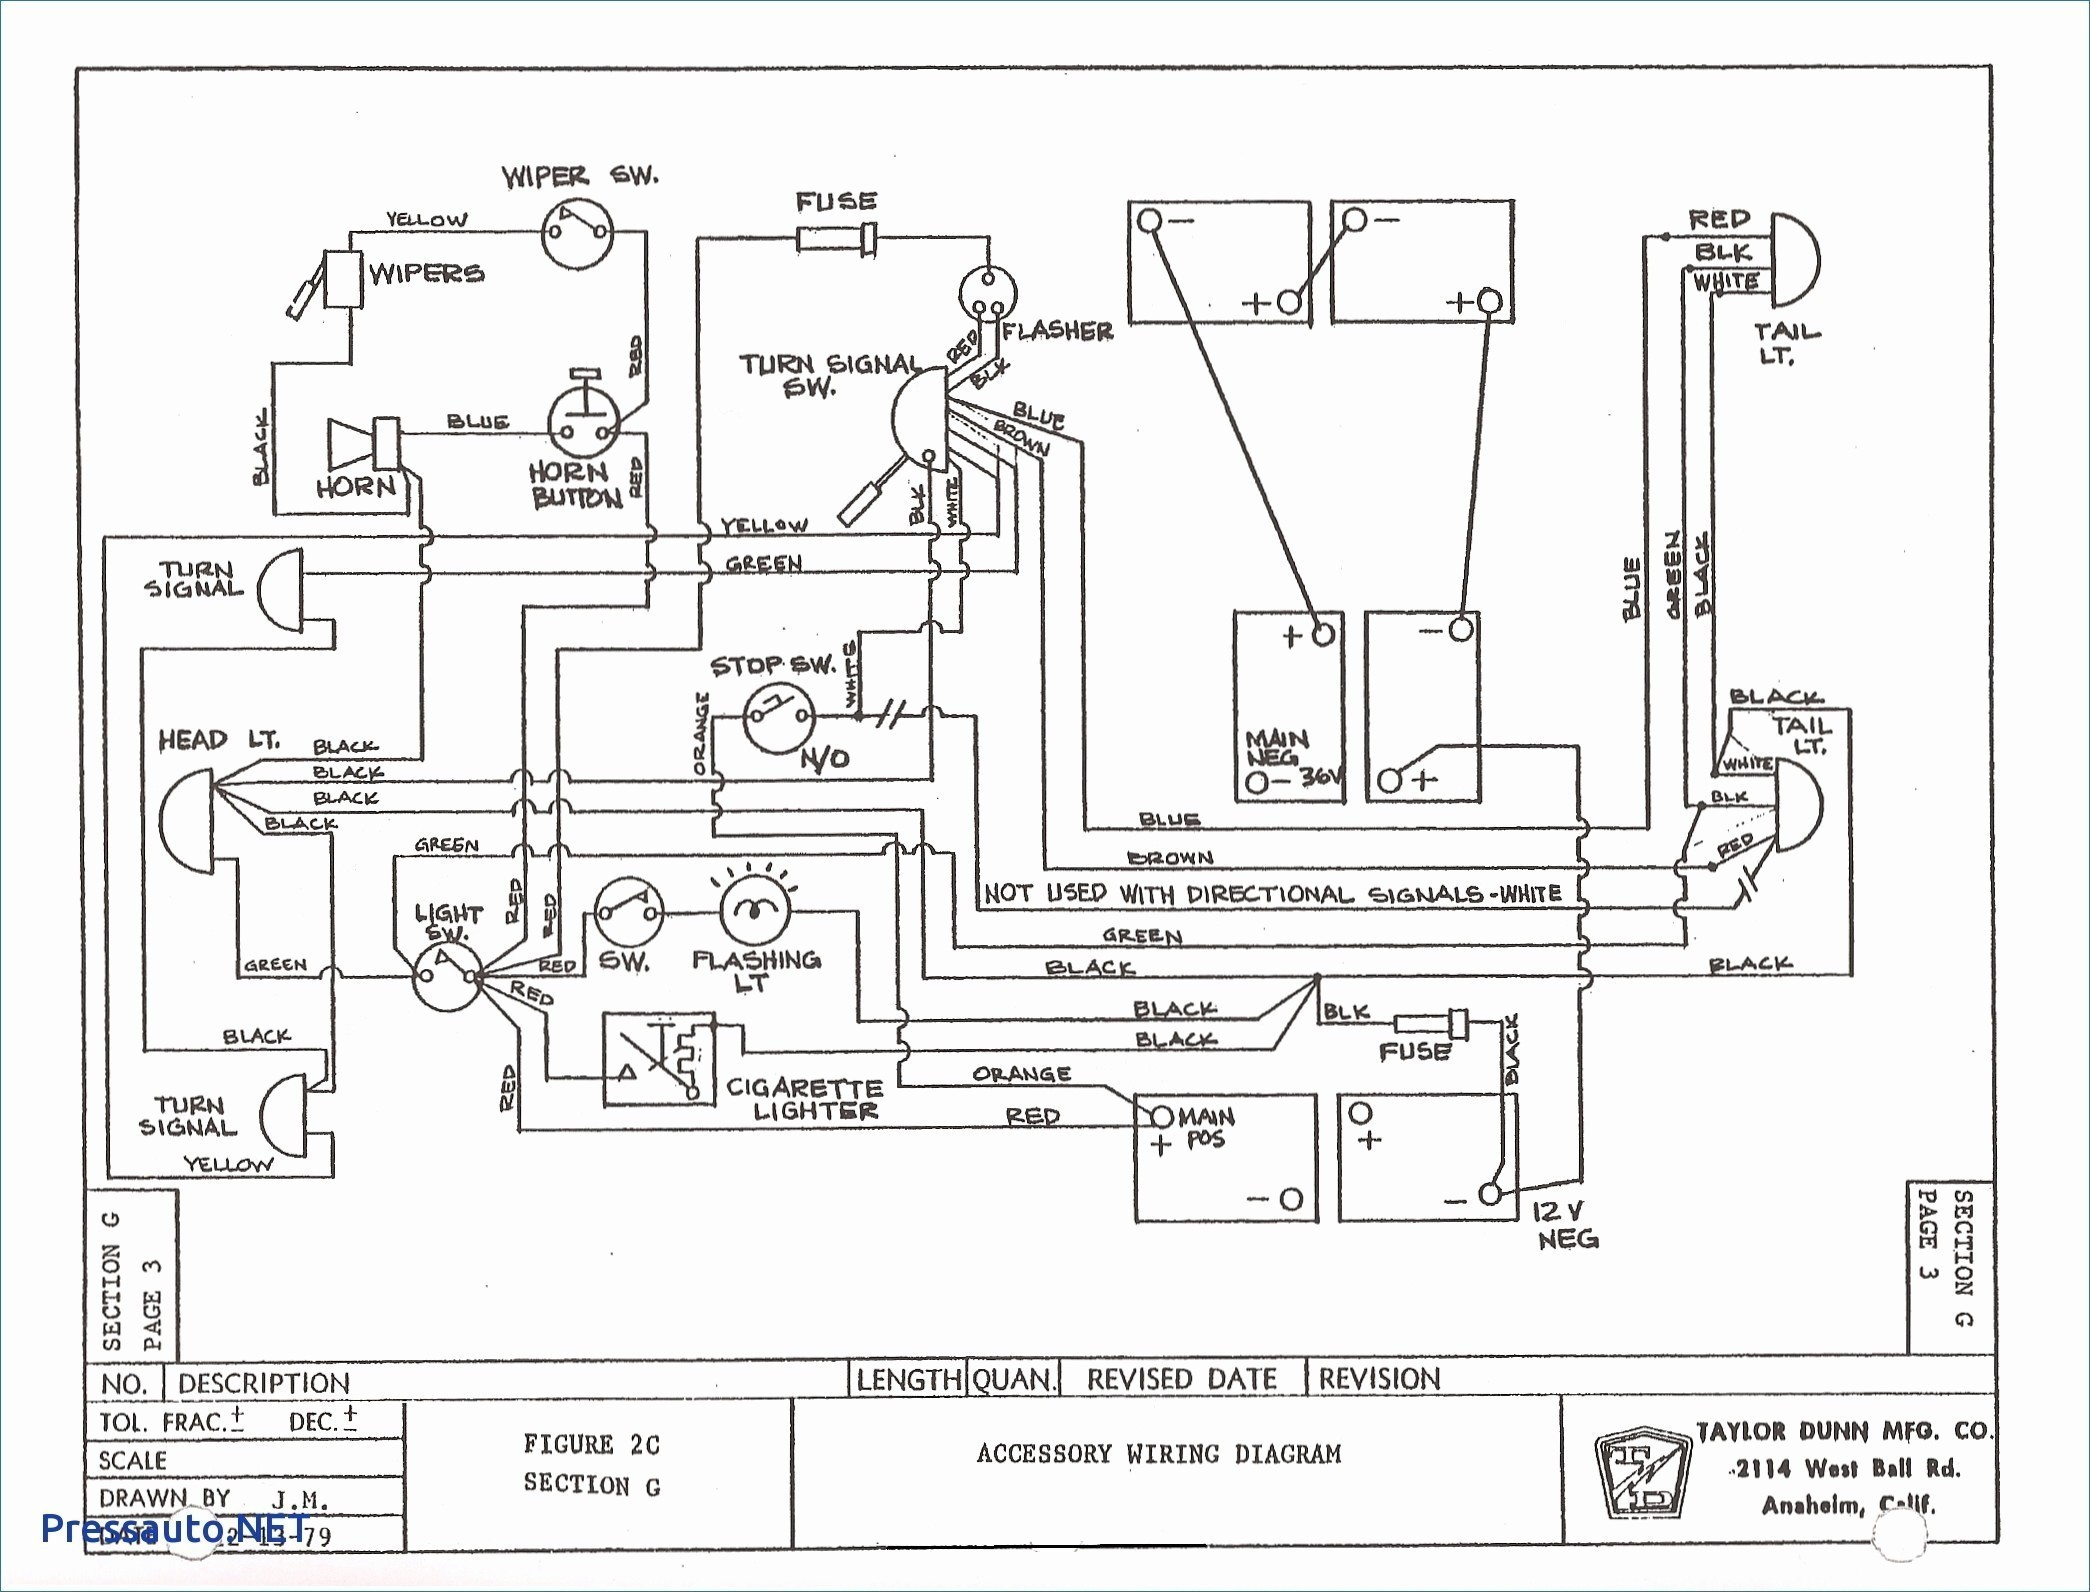 1986 Club Car Ds Schematic Wiring Diagram 591 Ez Go Golf Cart Parts Diagram Of 1986 Club Car Ds Schematic Wiring Diagram